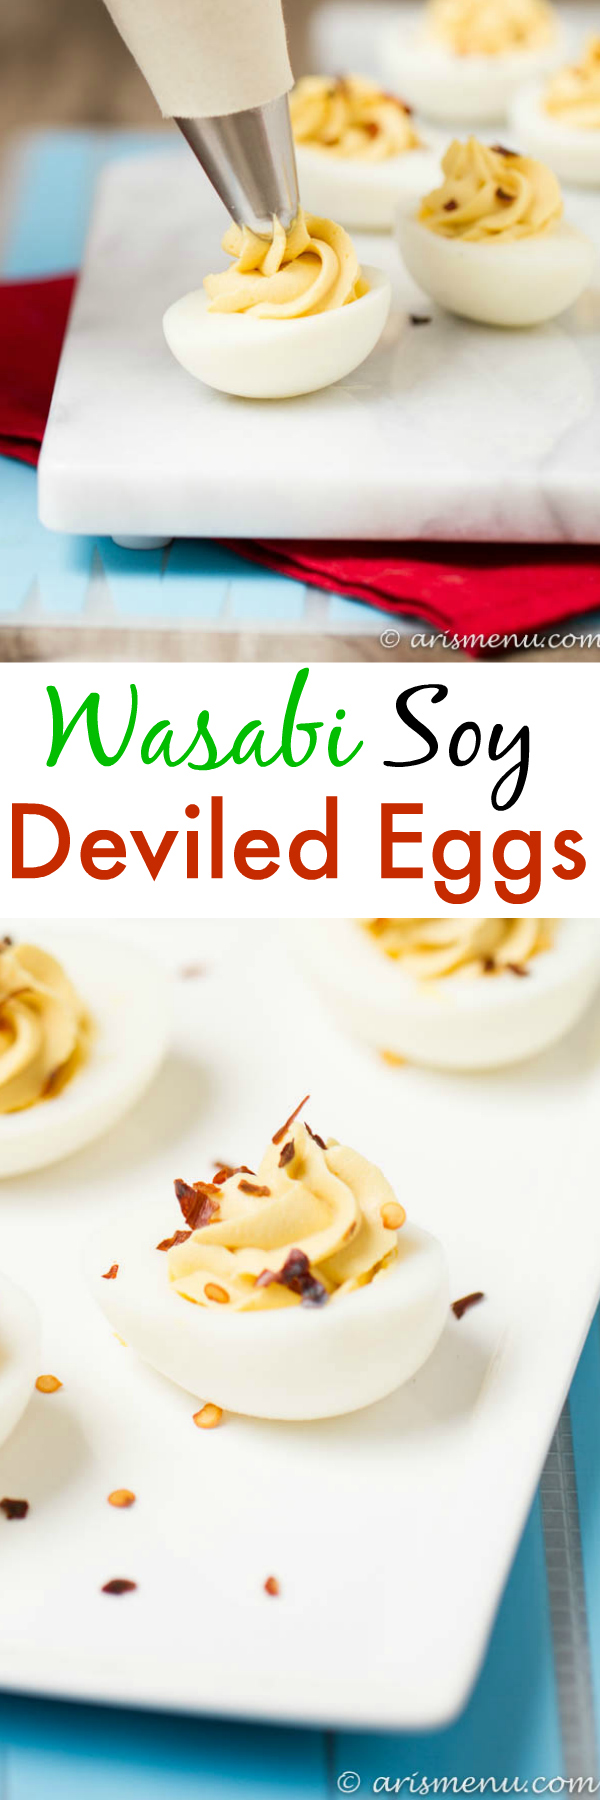 Wasabi Soy Deviled Eggs: Spicy and bold, like a california roll meets deviled eggs!